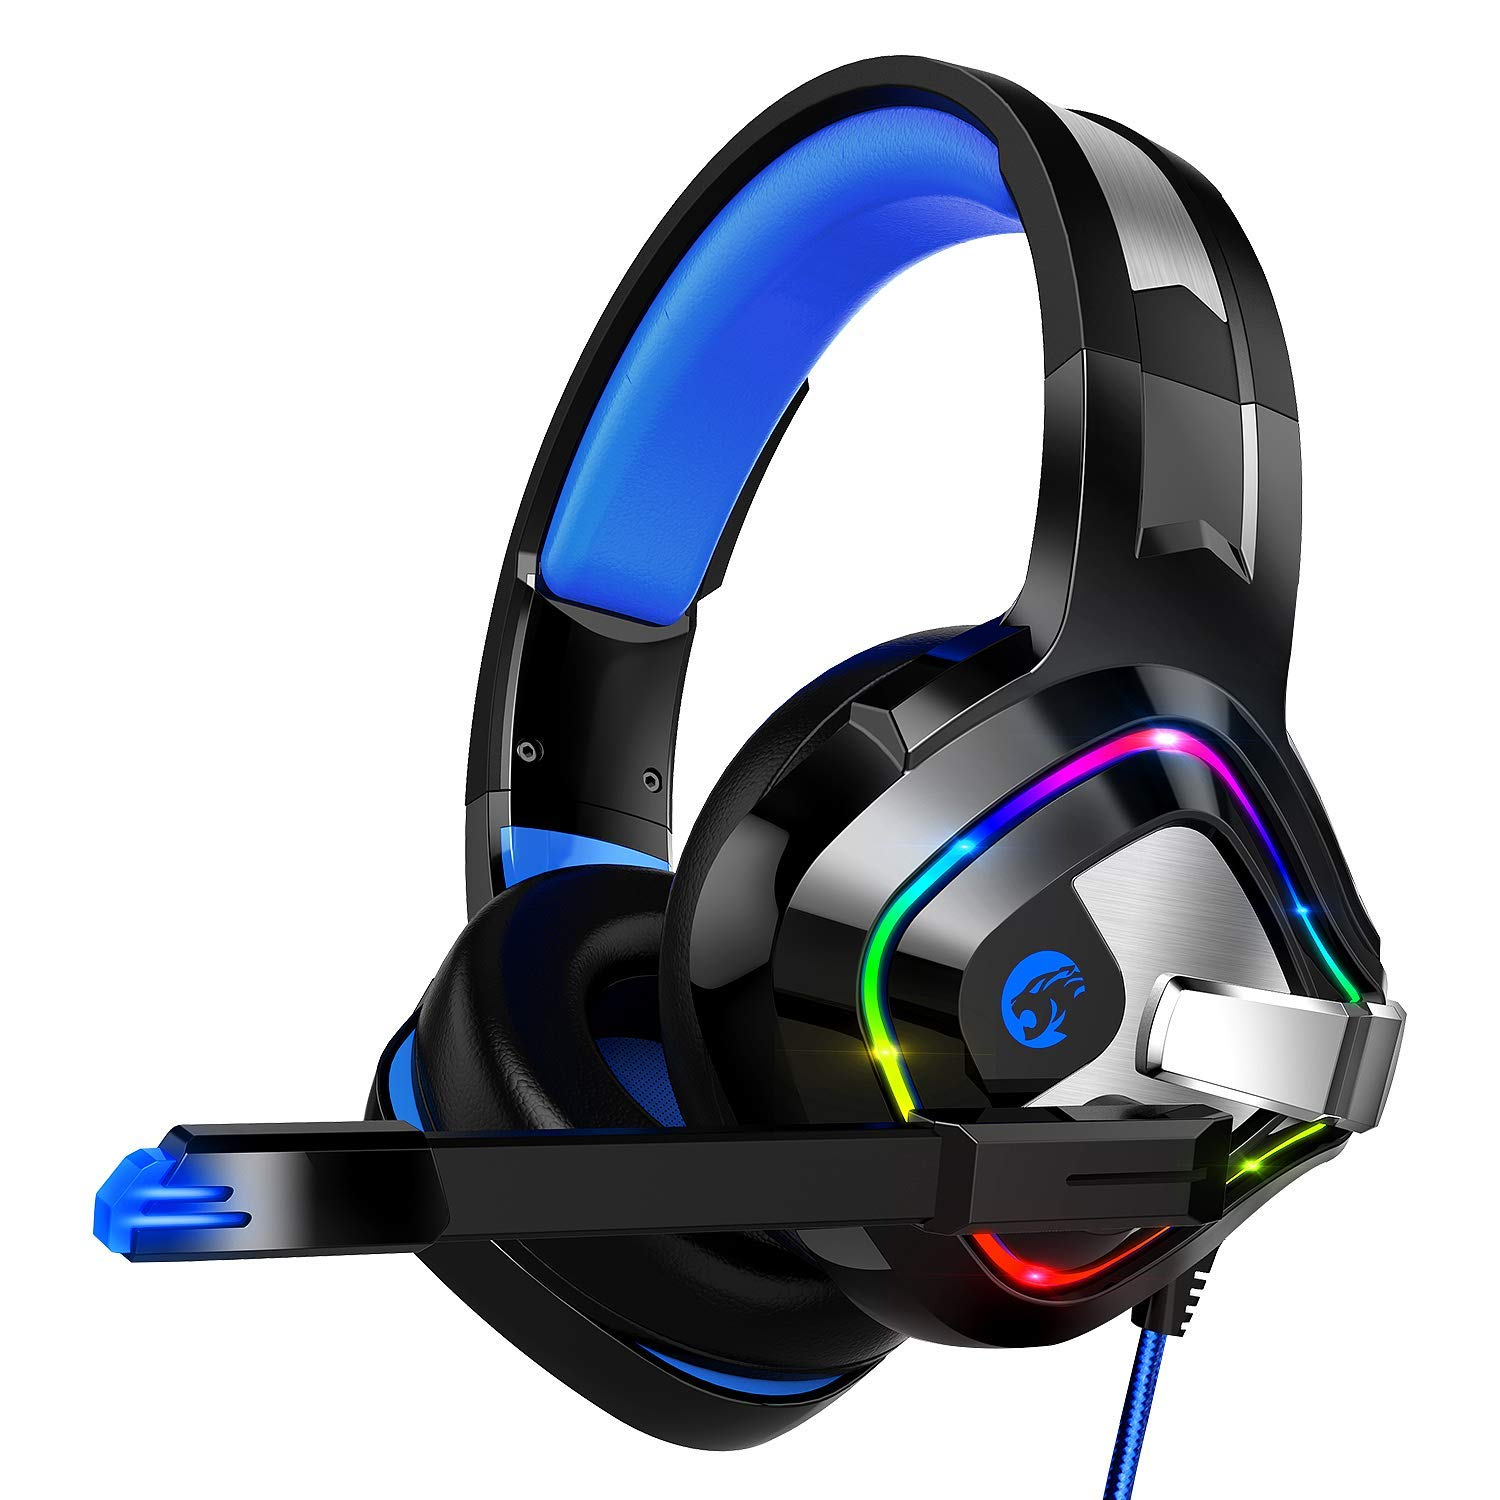 ZIUMIER Gaming Headset PS4 Headset, Xbox One Headset with Noise Canceling Mic & RGB Light, PC Headset with Stereo Surround Sound, Over Ear Headphones for PC, PS4, Xbox One, Laptop (Renewed) by ZIUMIER